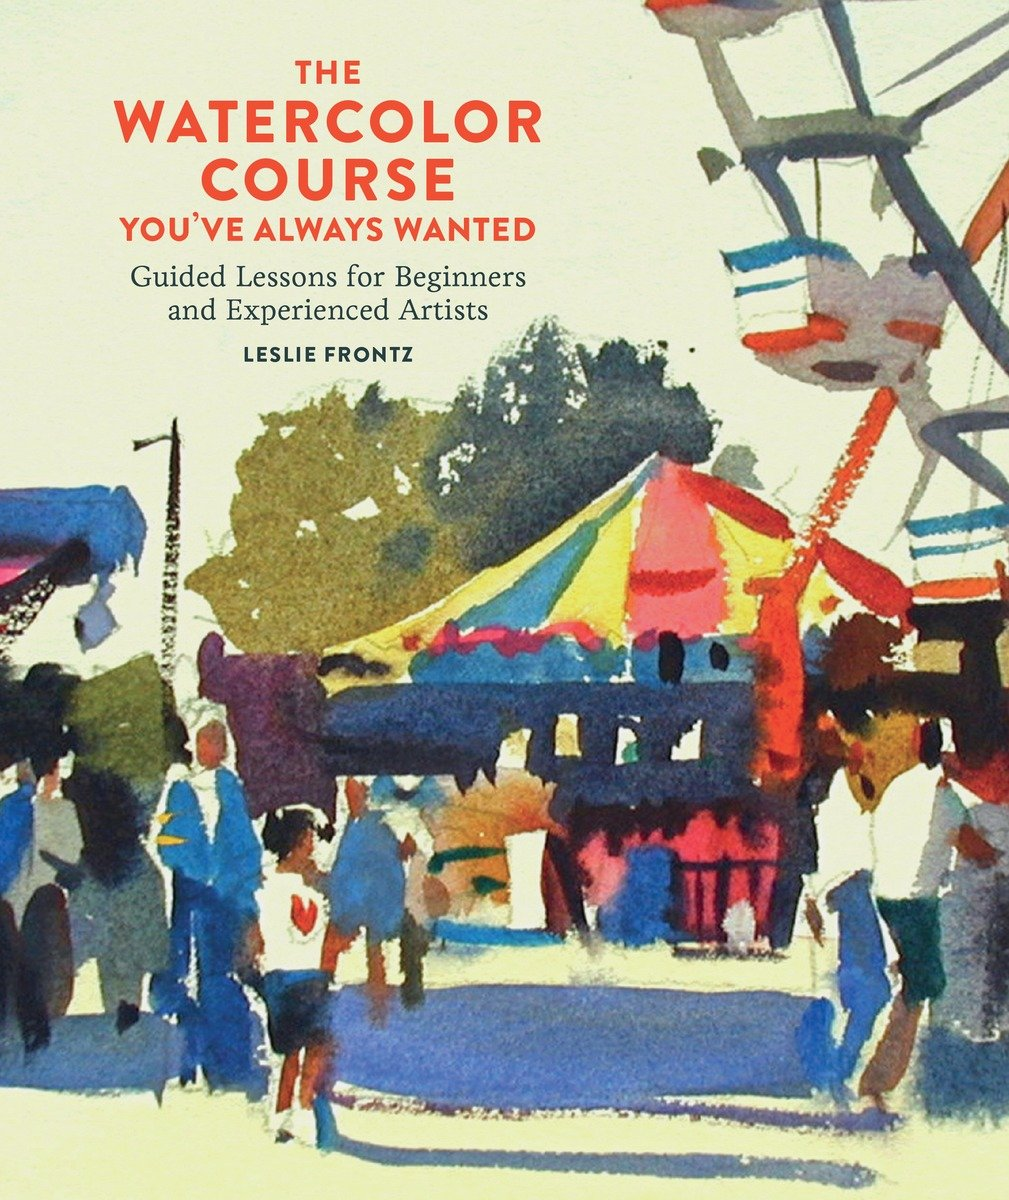 Watercolor artist magazine customer service - Amazon Com The Watercolor Course You Ve Always Wanted Guided Lessons For Beginners And Experienced Artists 9780770435295 Leslie Frontz Books